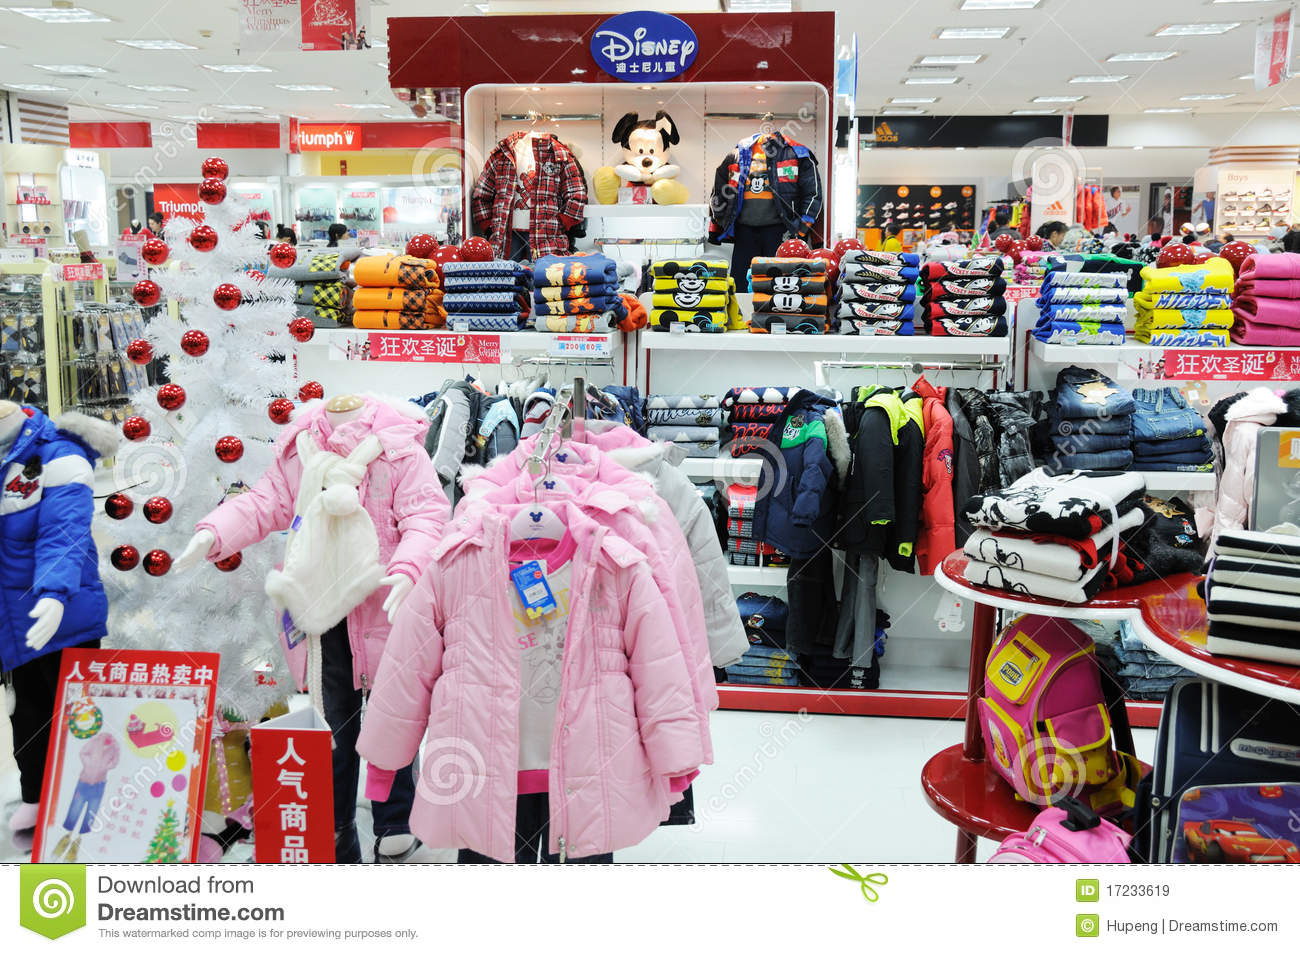 Find girls' clothing sets from Sears for formal and casual occasions. Easily create a cute, convenient wardrobe with new girls' clothing sets. From polka-dotted blouses to formalwear to character apparel, your little lady will adore the fun designs.